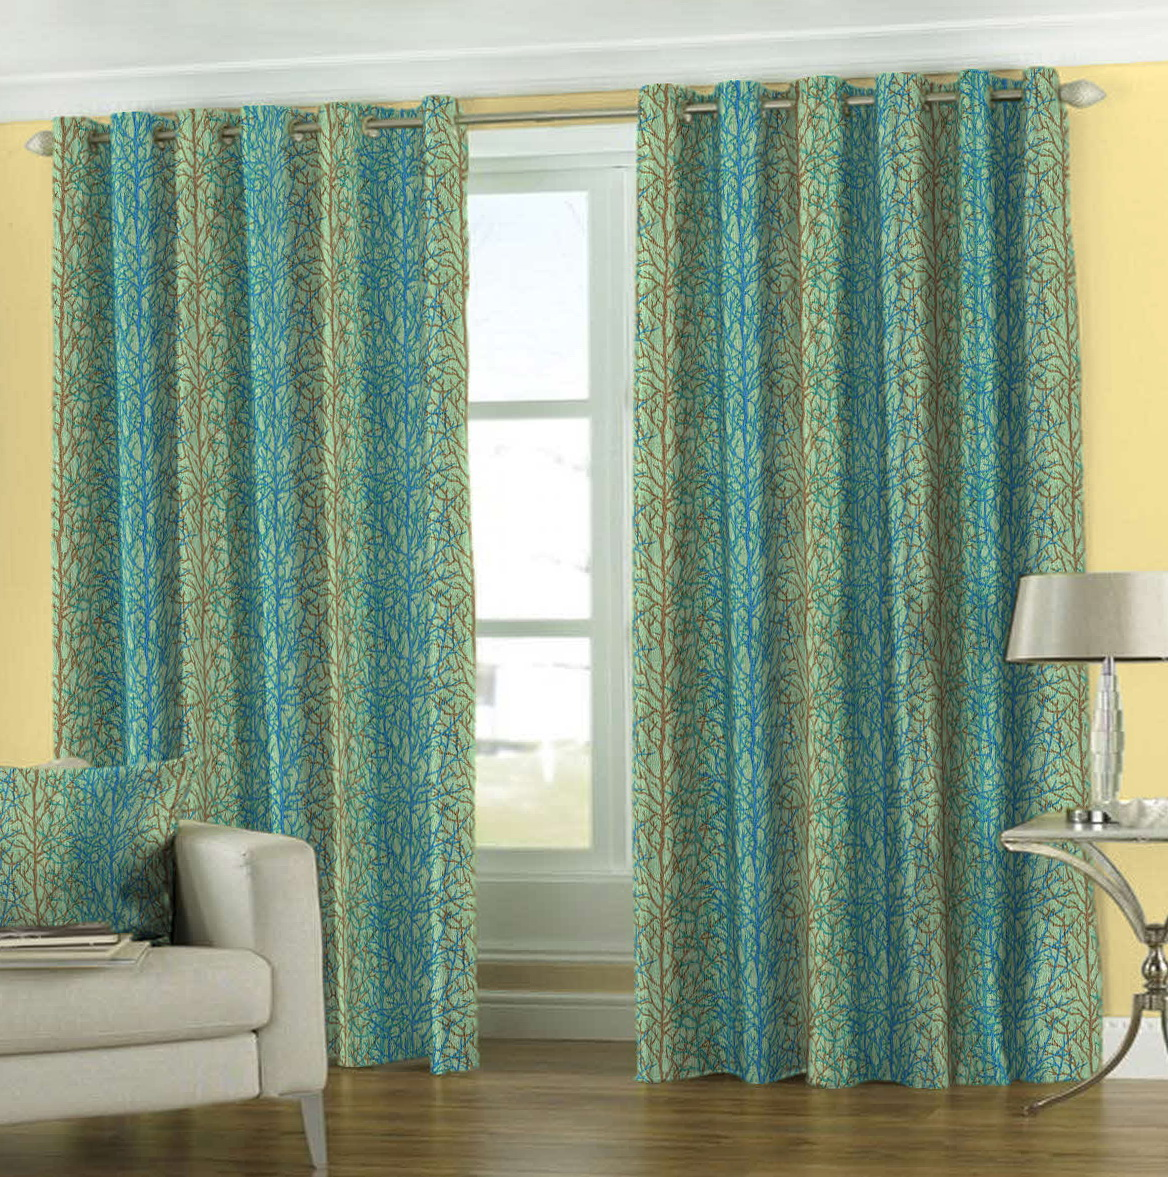 Blue And Green Window Curtains  Home Design Ideas